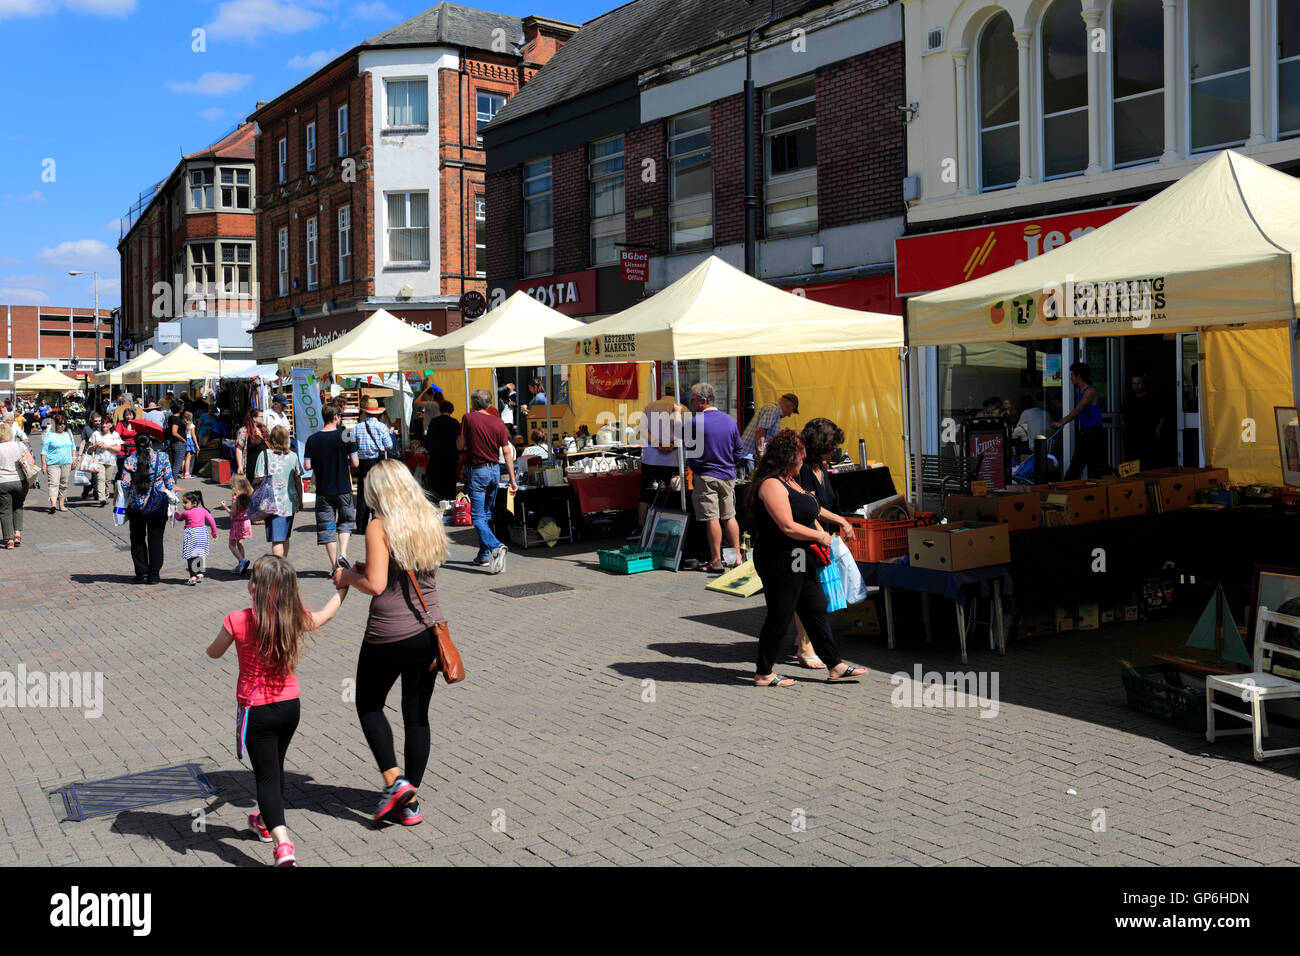 Street view of Kettering town, Northamptonshire County, England; Britain; UK - Stock Image